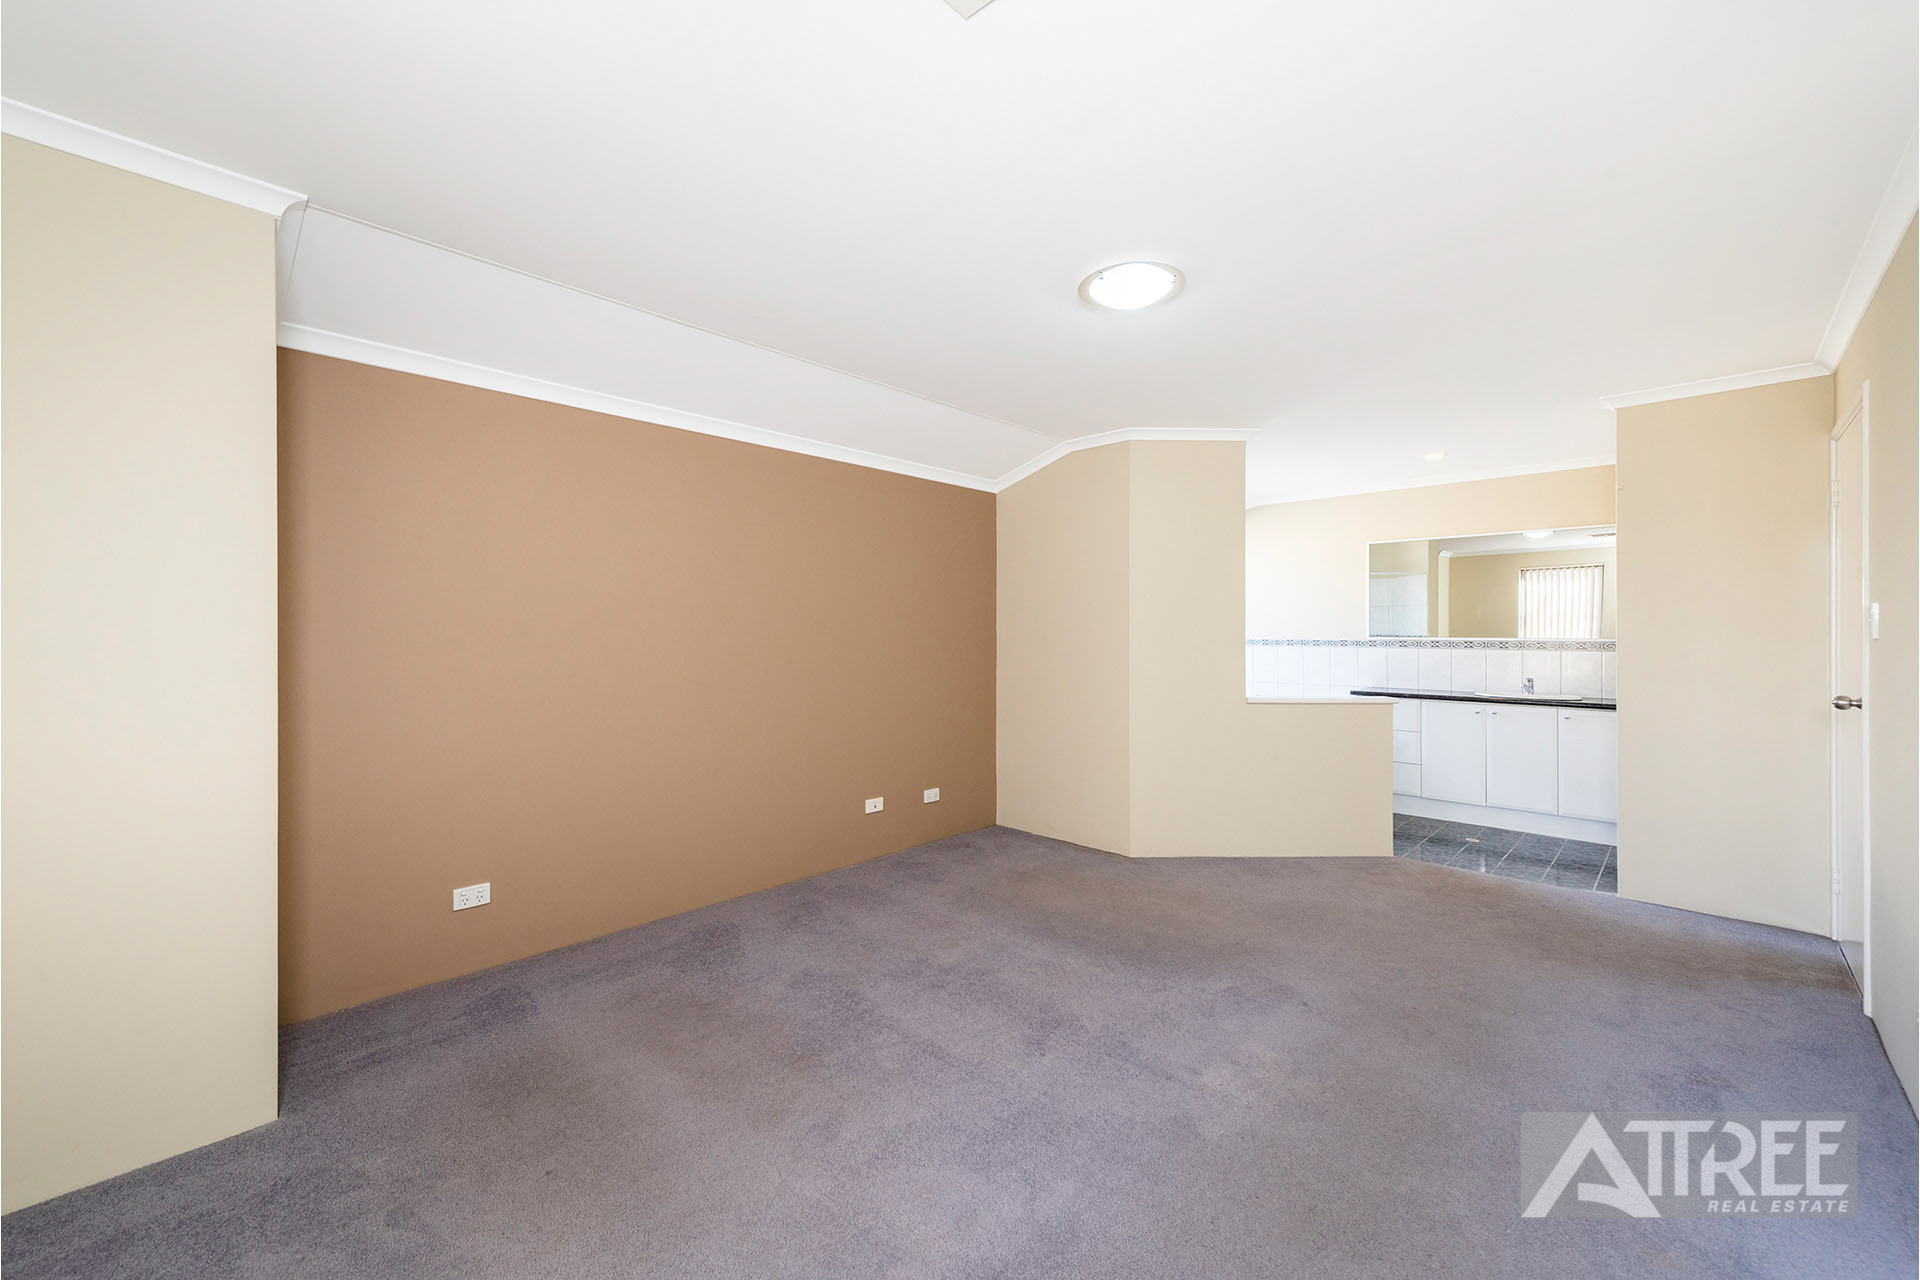 Property for sale in CANNING VALE, 21 Ezekiel Avenue : Attree Real Estate